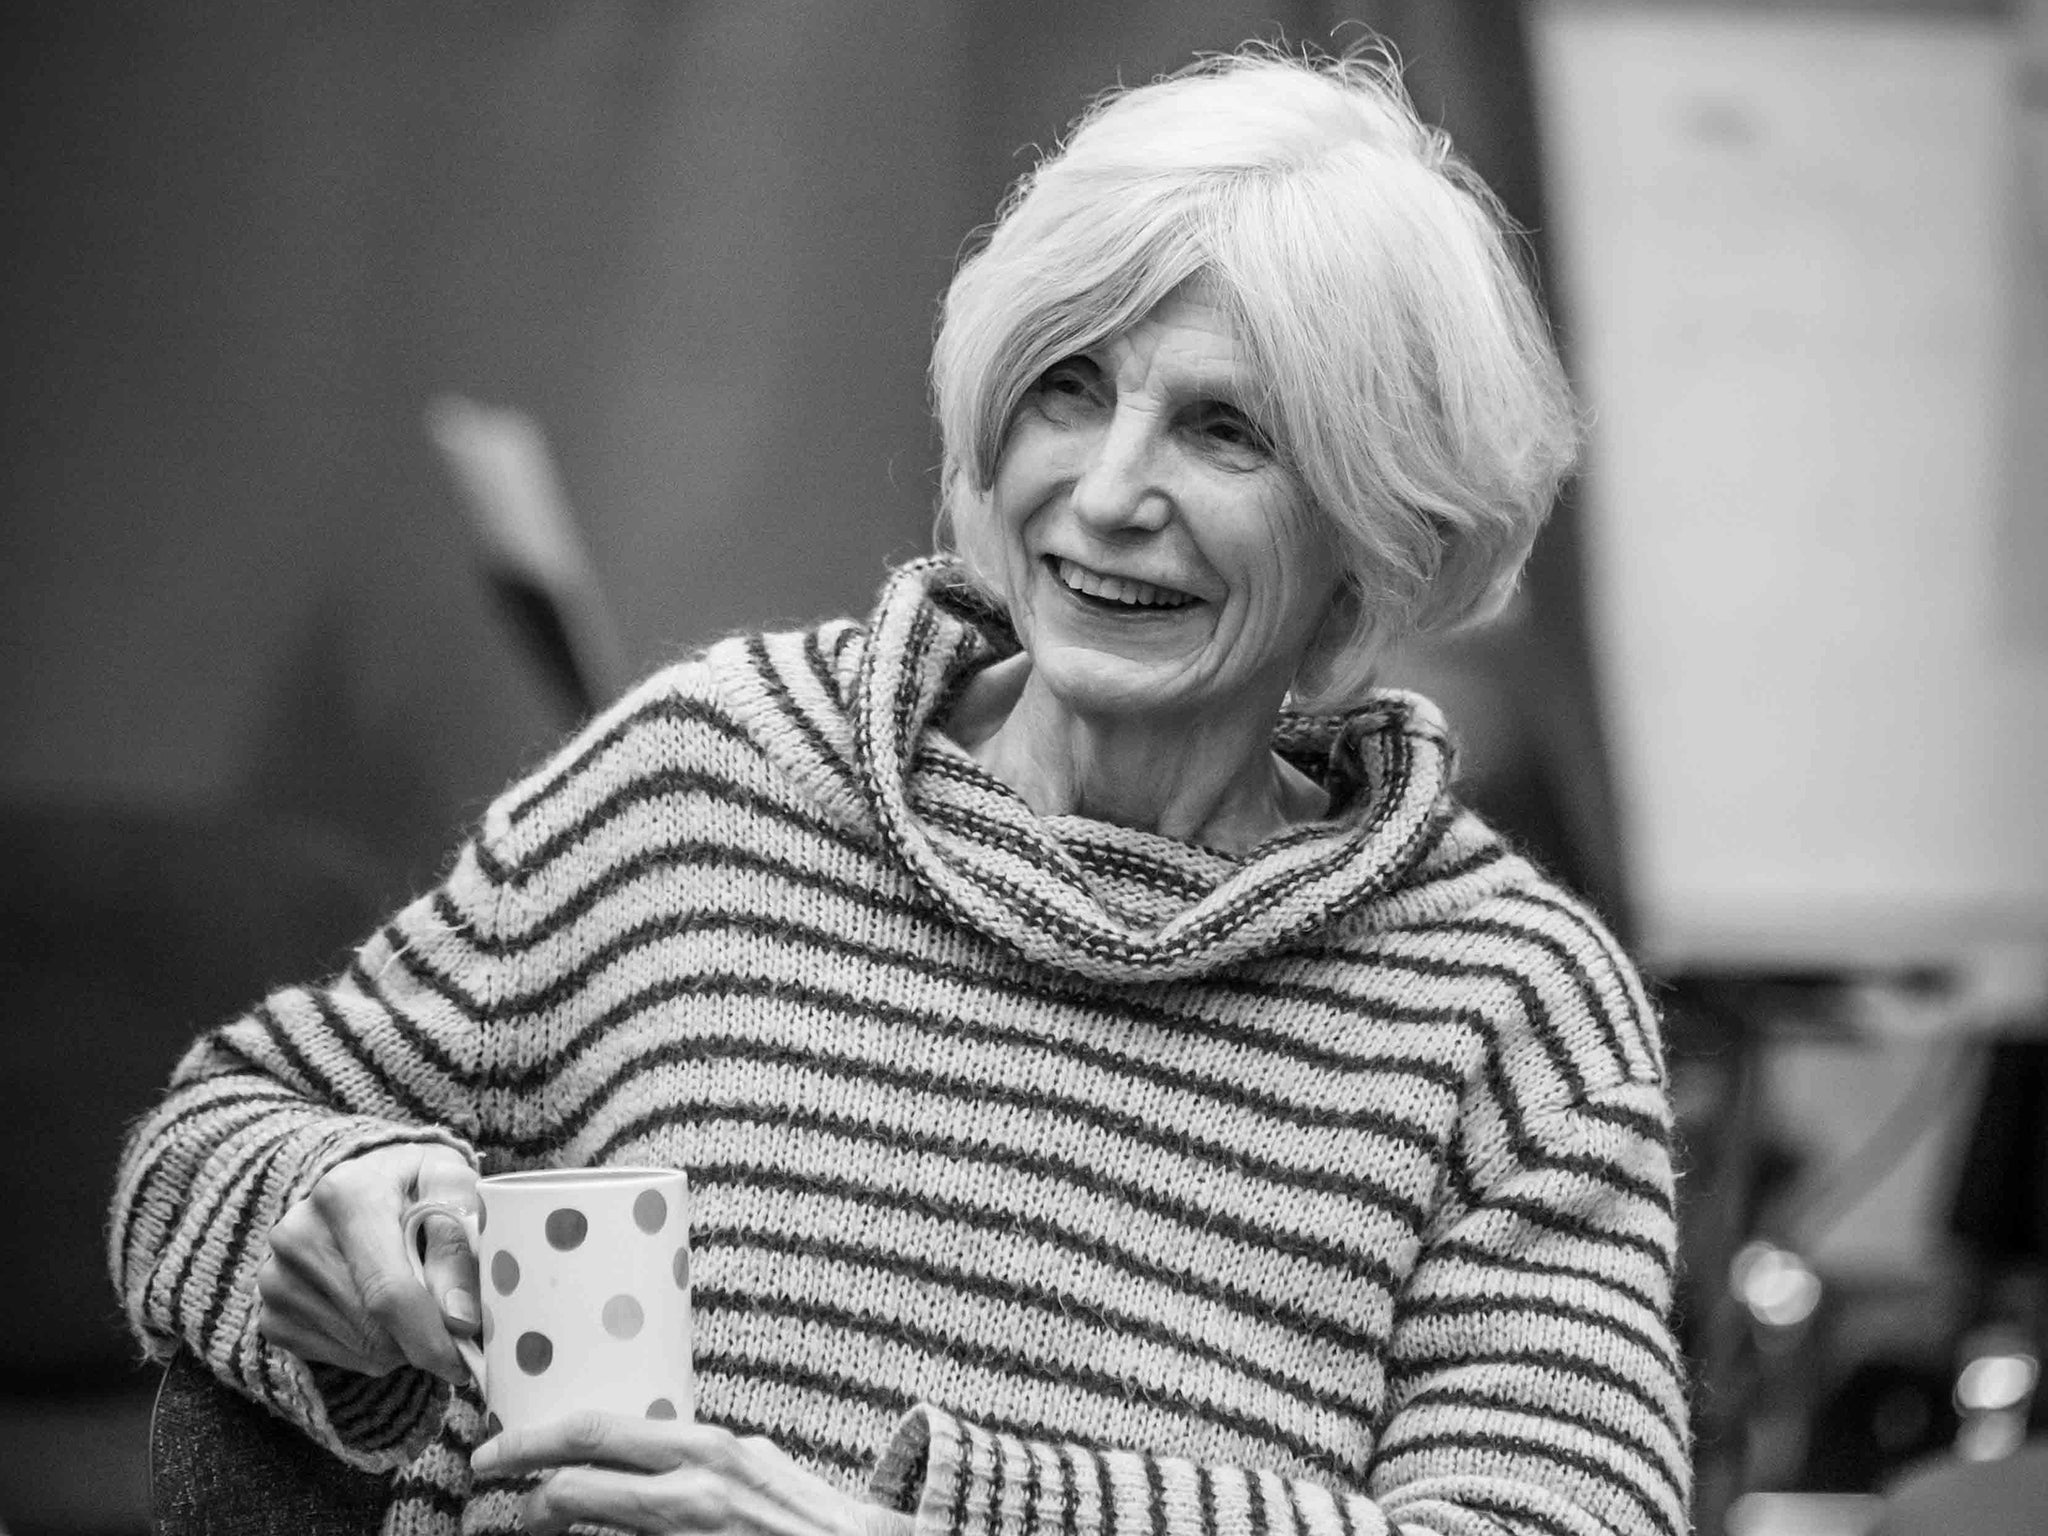 the biography of caryl churchill from england Methuen drama (a&c black publishers ltd) allowed me to cite from the text of top girls used in caryl churchill plays: 21 would like to acknowledge michael daniels.